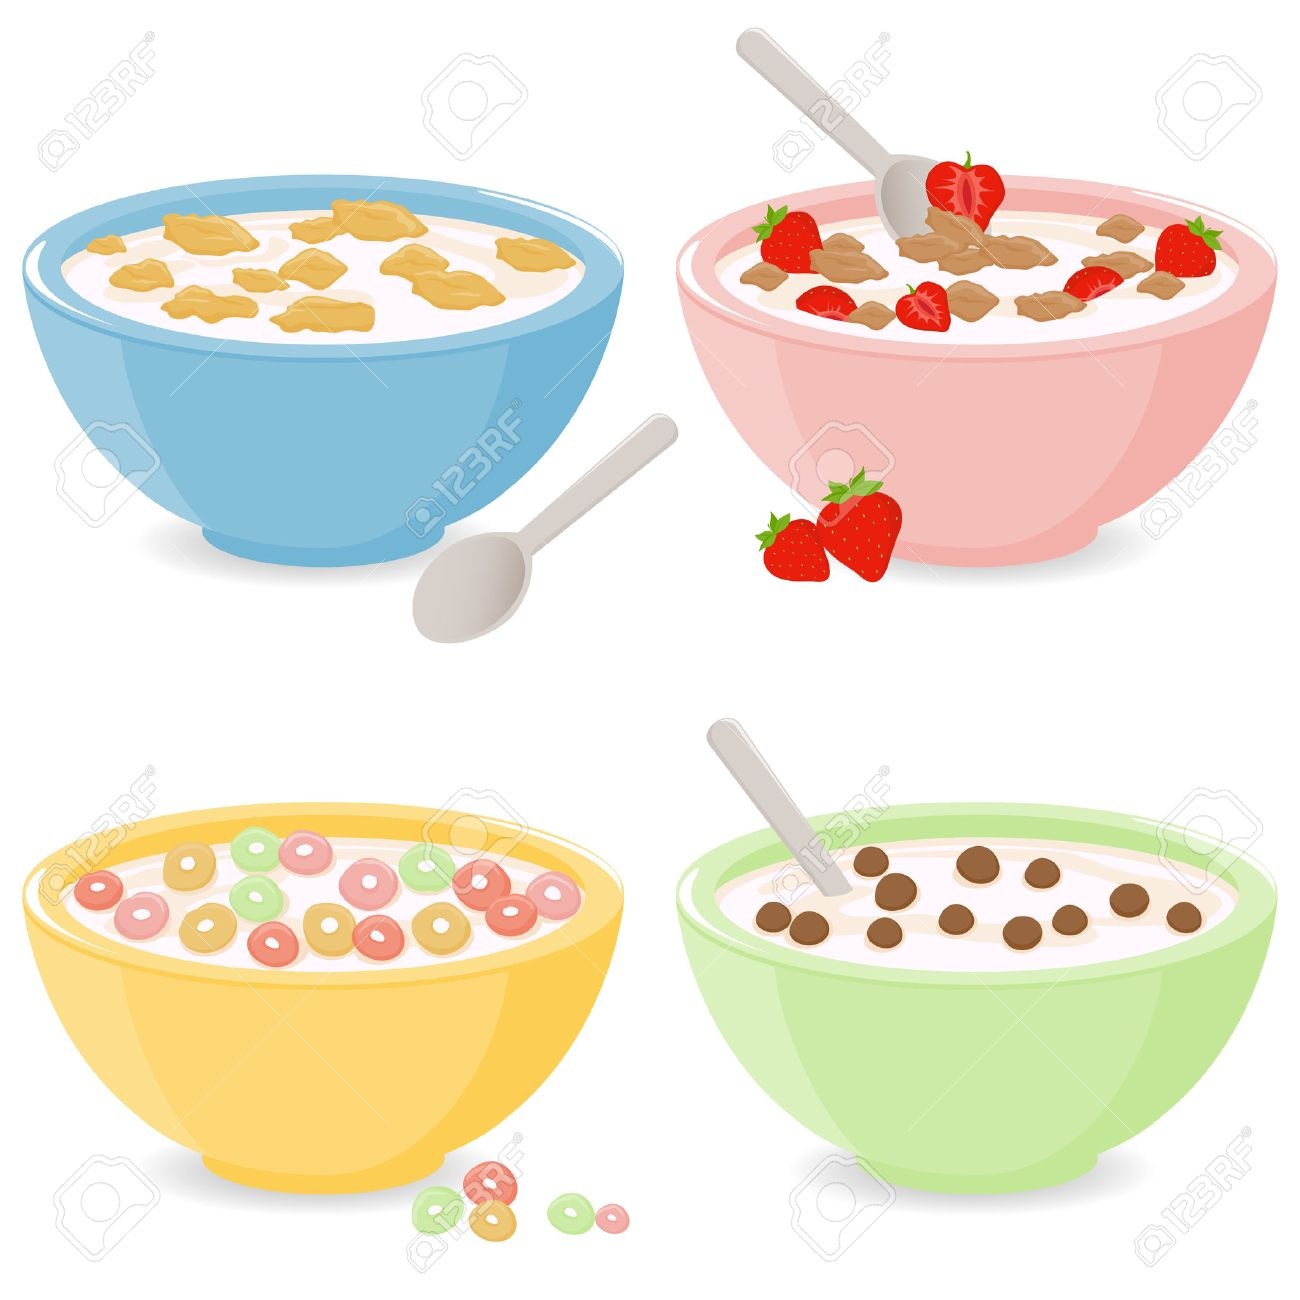 Bowls of breakfast cereal - 50050668